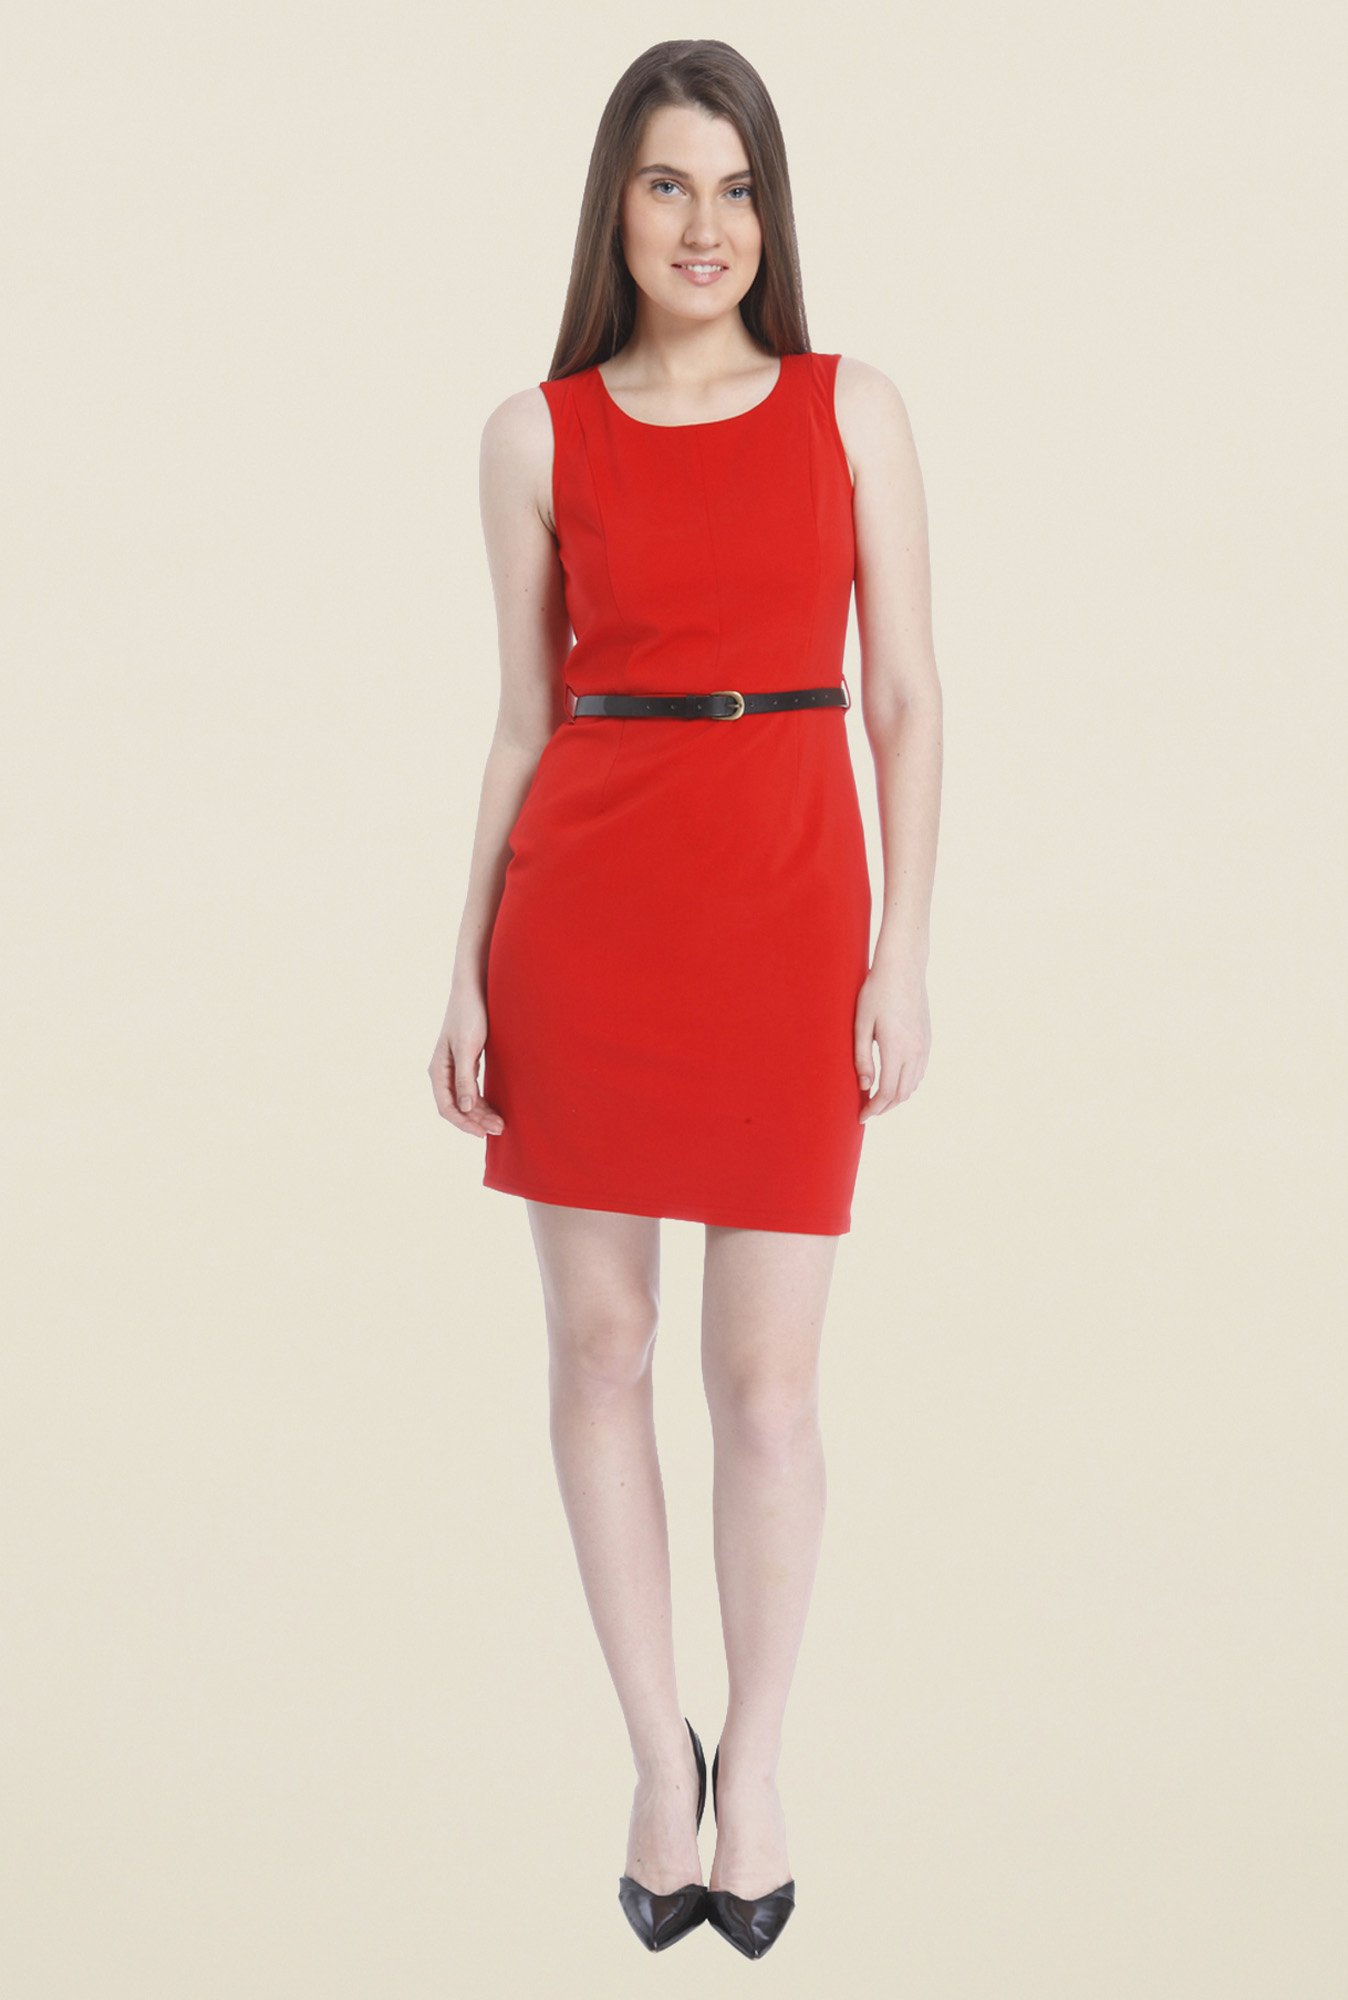 Vero Moda Red A-Line Dress